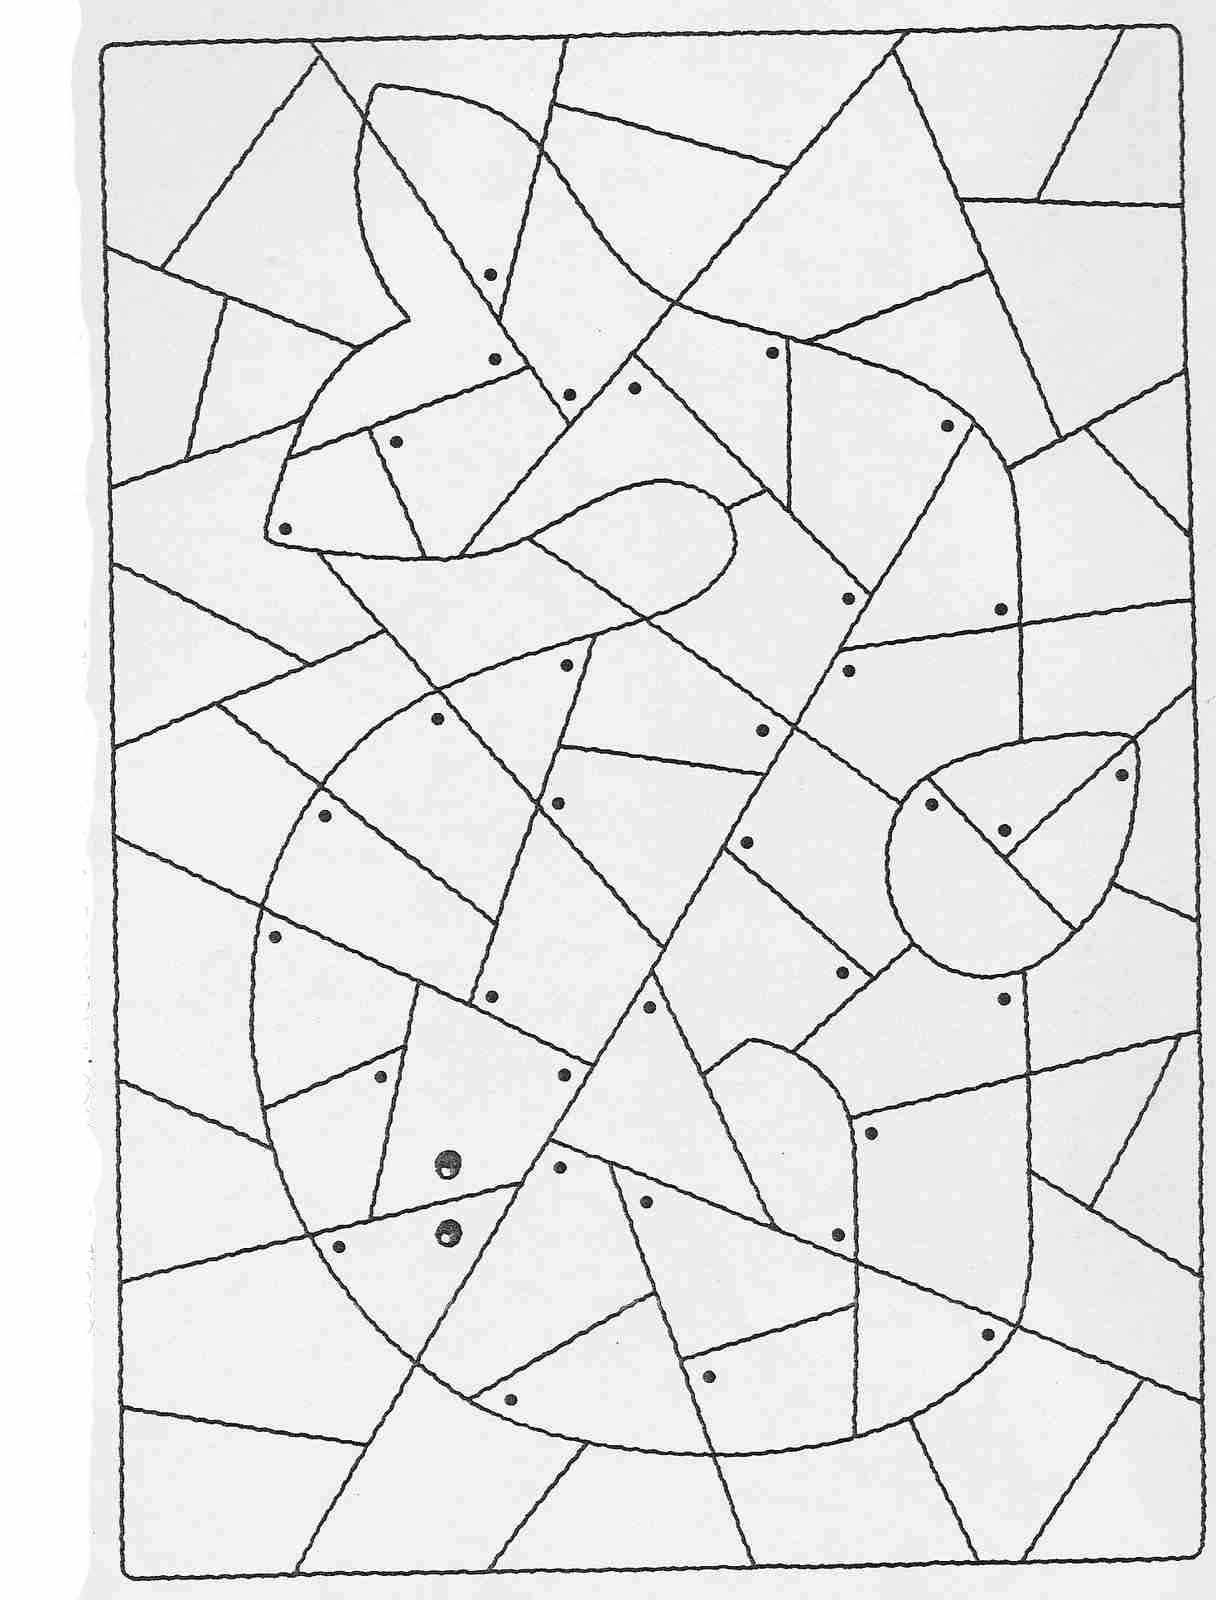 Elementary school worksheets complete and coloring 45 activities elementary school worksheets complete and coloring 45 robcynllc Image collections